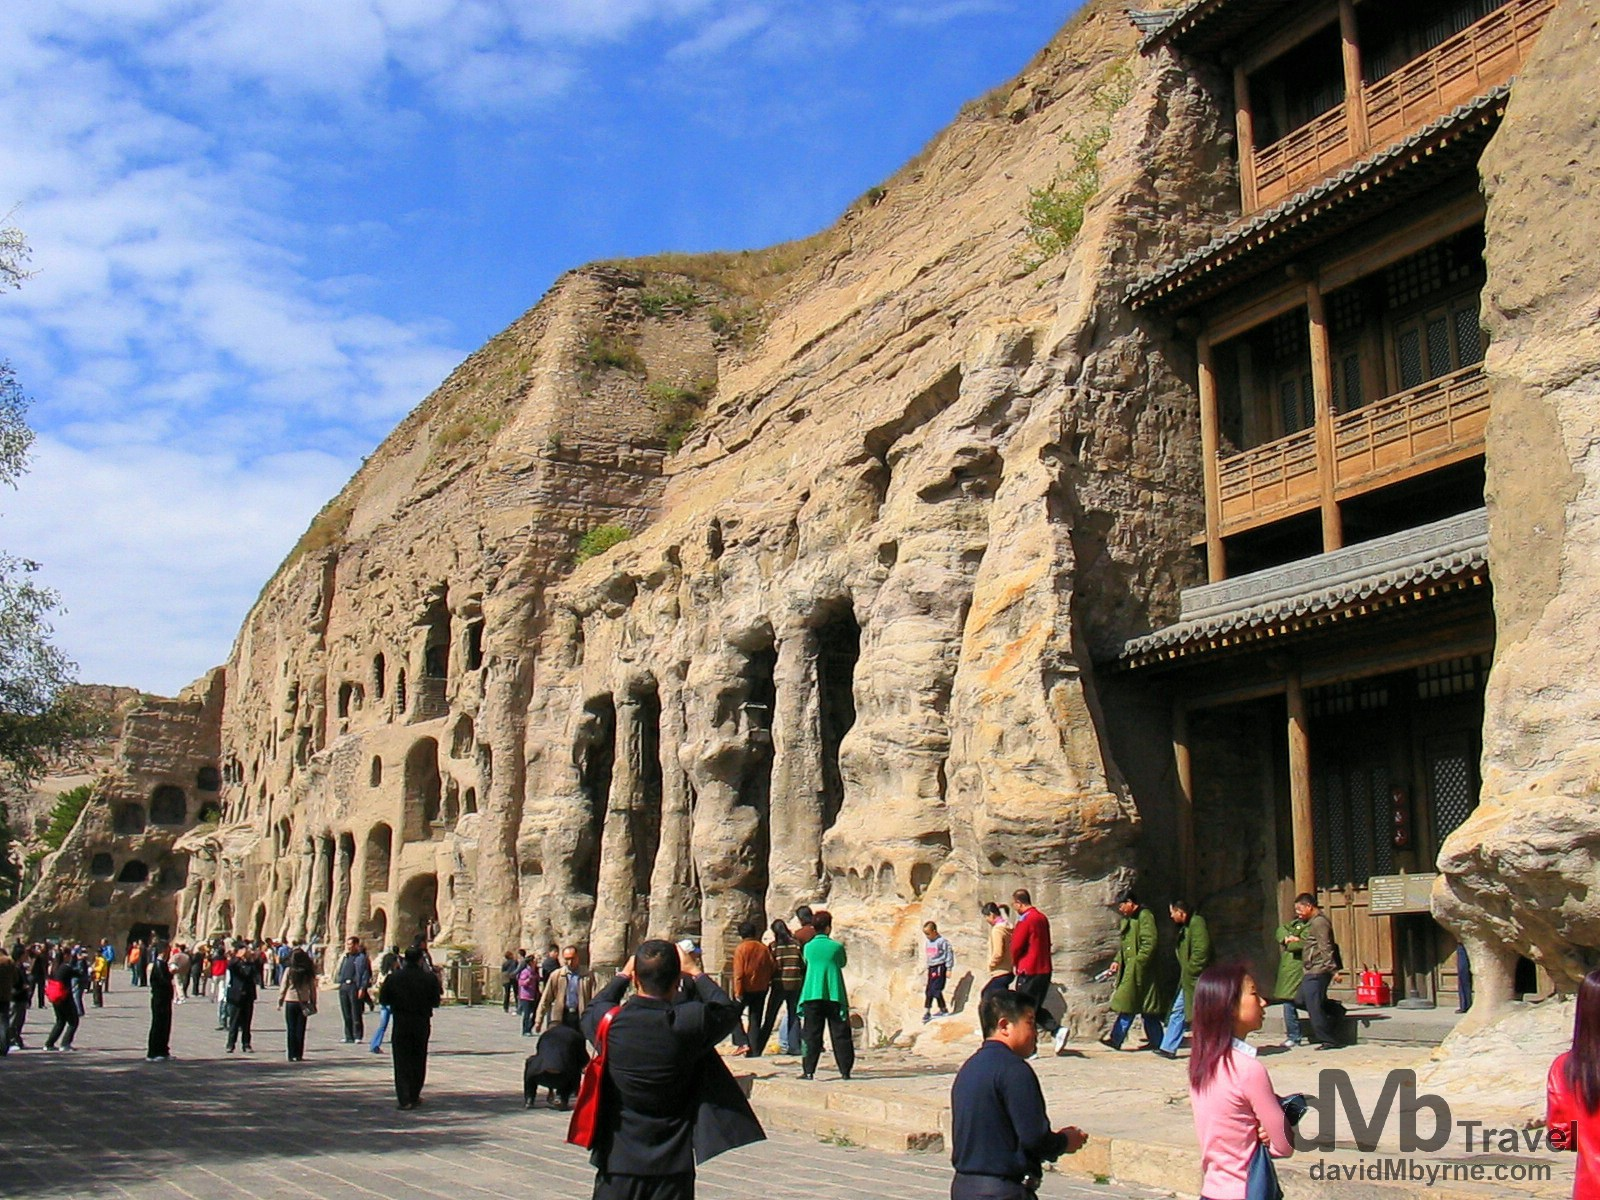 A section of the UNESCO listed Yungang Cave Complex in Shanxi Province, China. October 2nd, 2004.